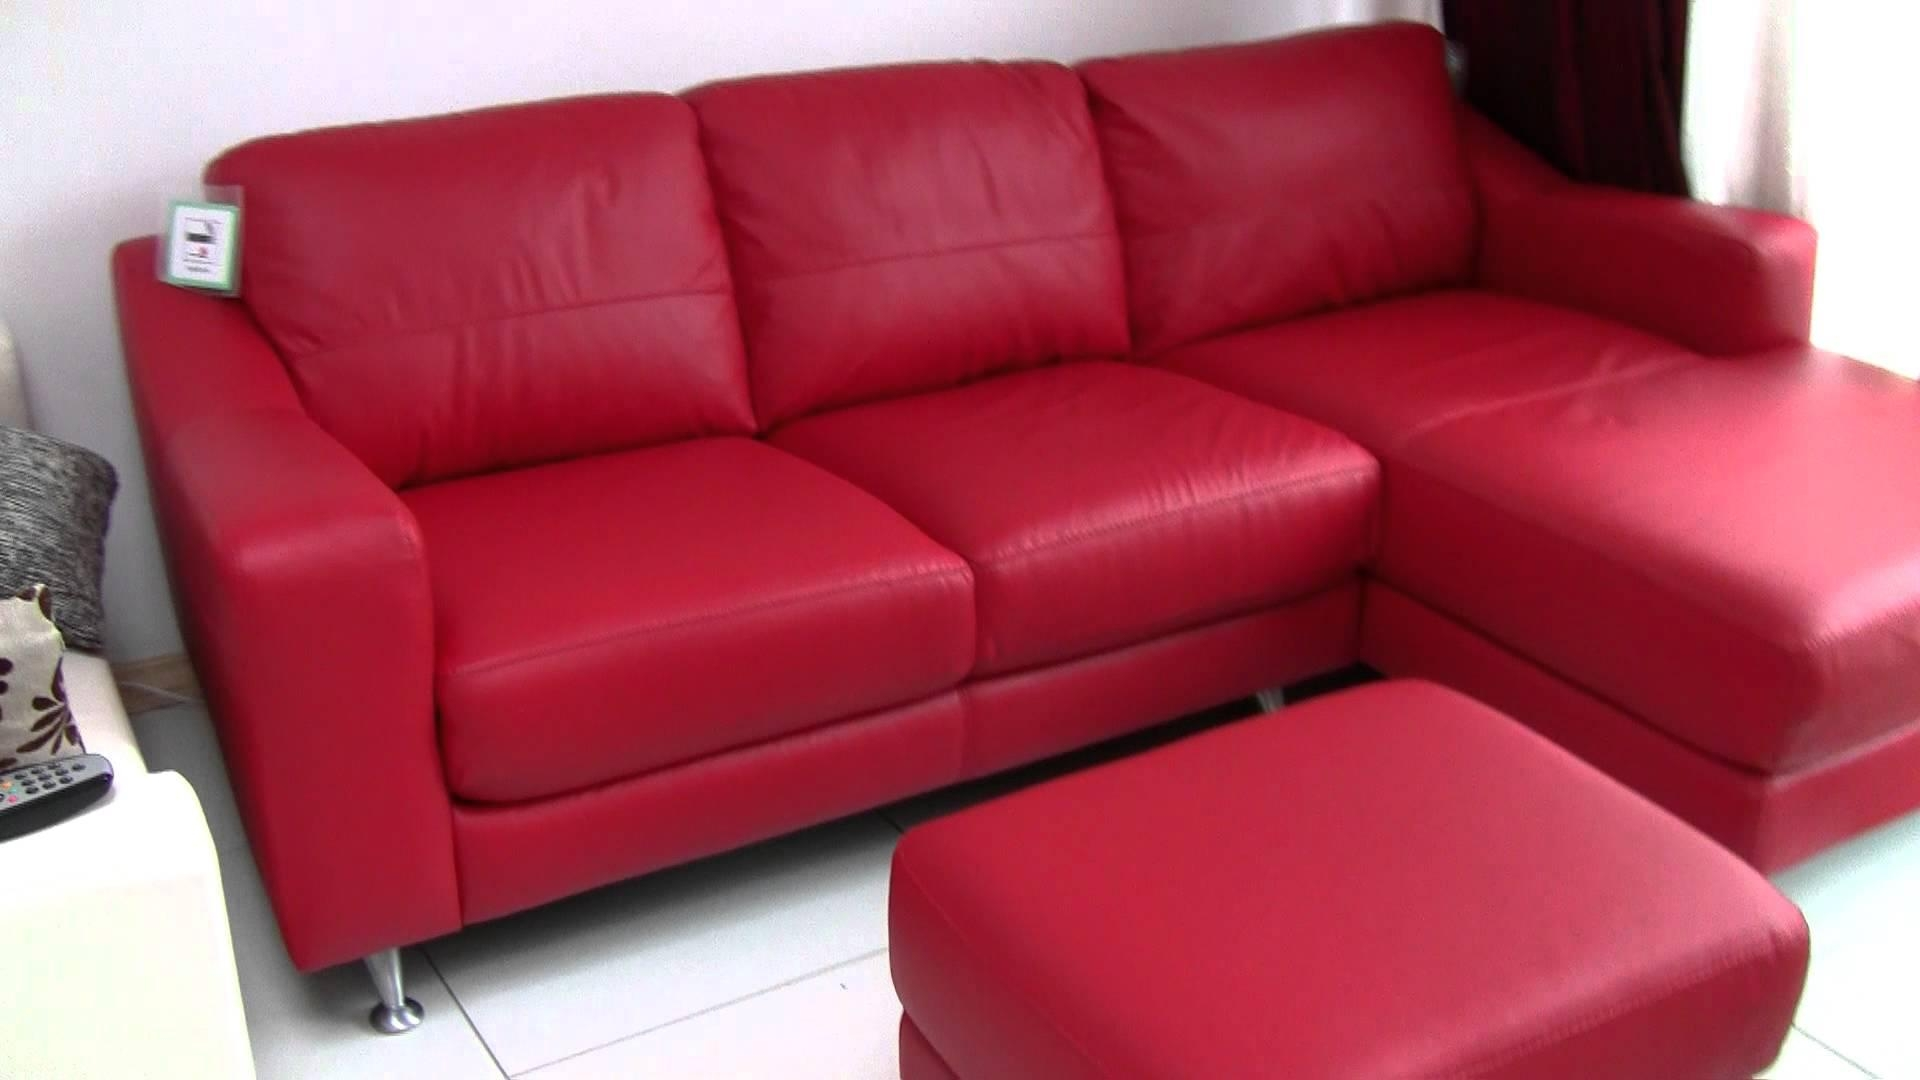 Dfs Leather Corner Sofa For Sale £500 – Youtube With Leather Corner Sofa Bed (View 17 of 20)